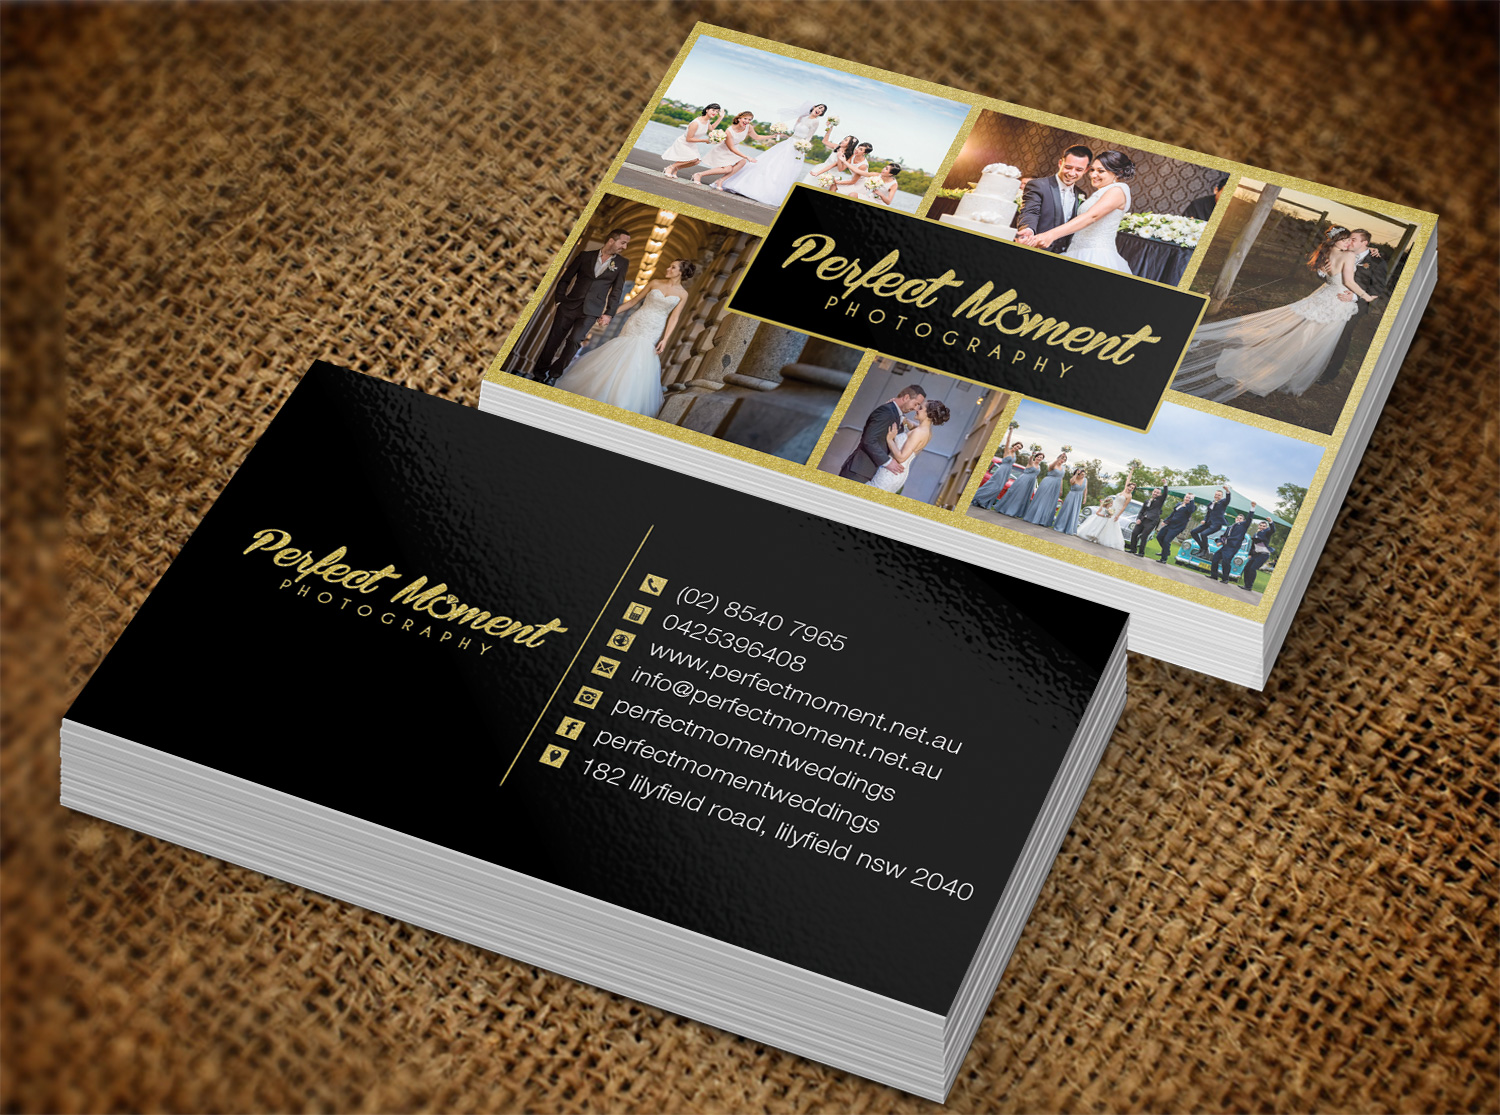 Serious modern wedding photography business card design for new business card design by pawana designs for new stage media pty ltd design reheart Choice Image